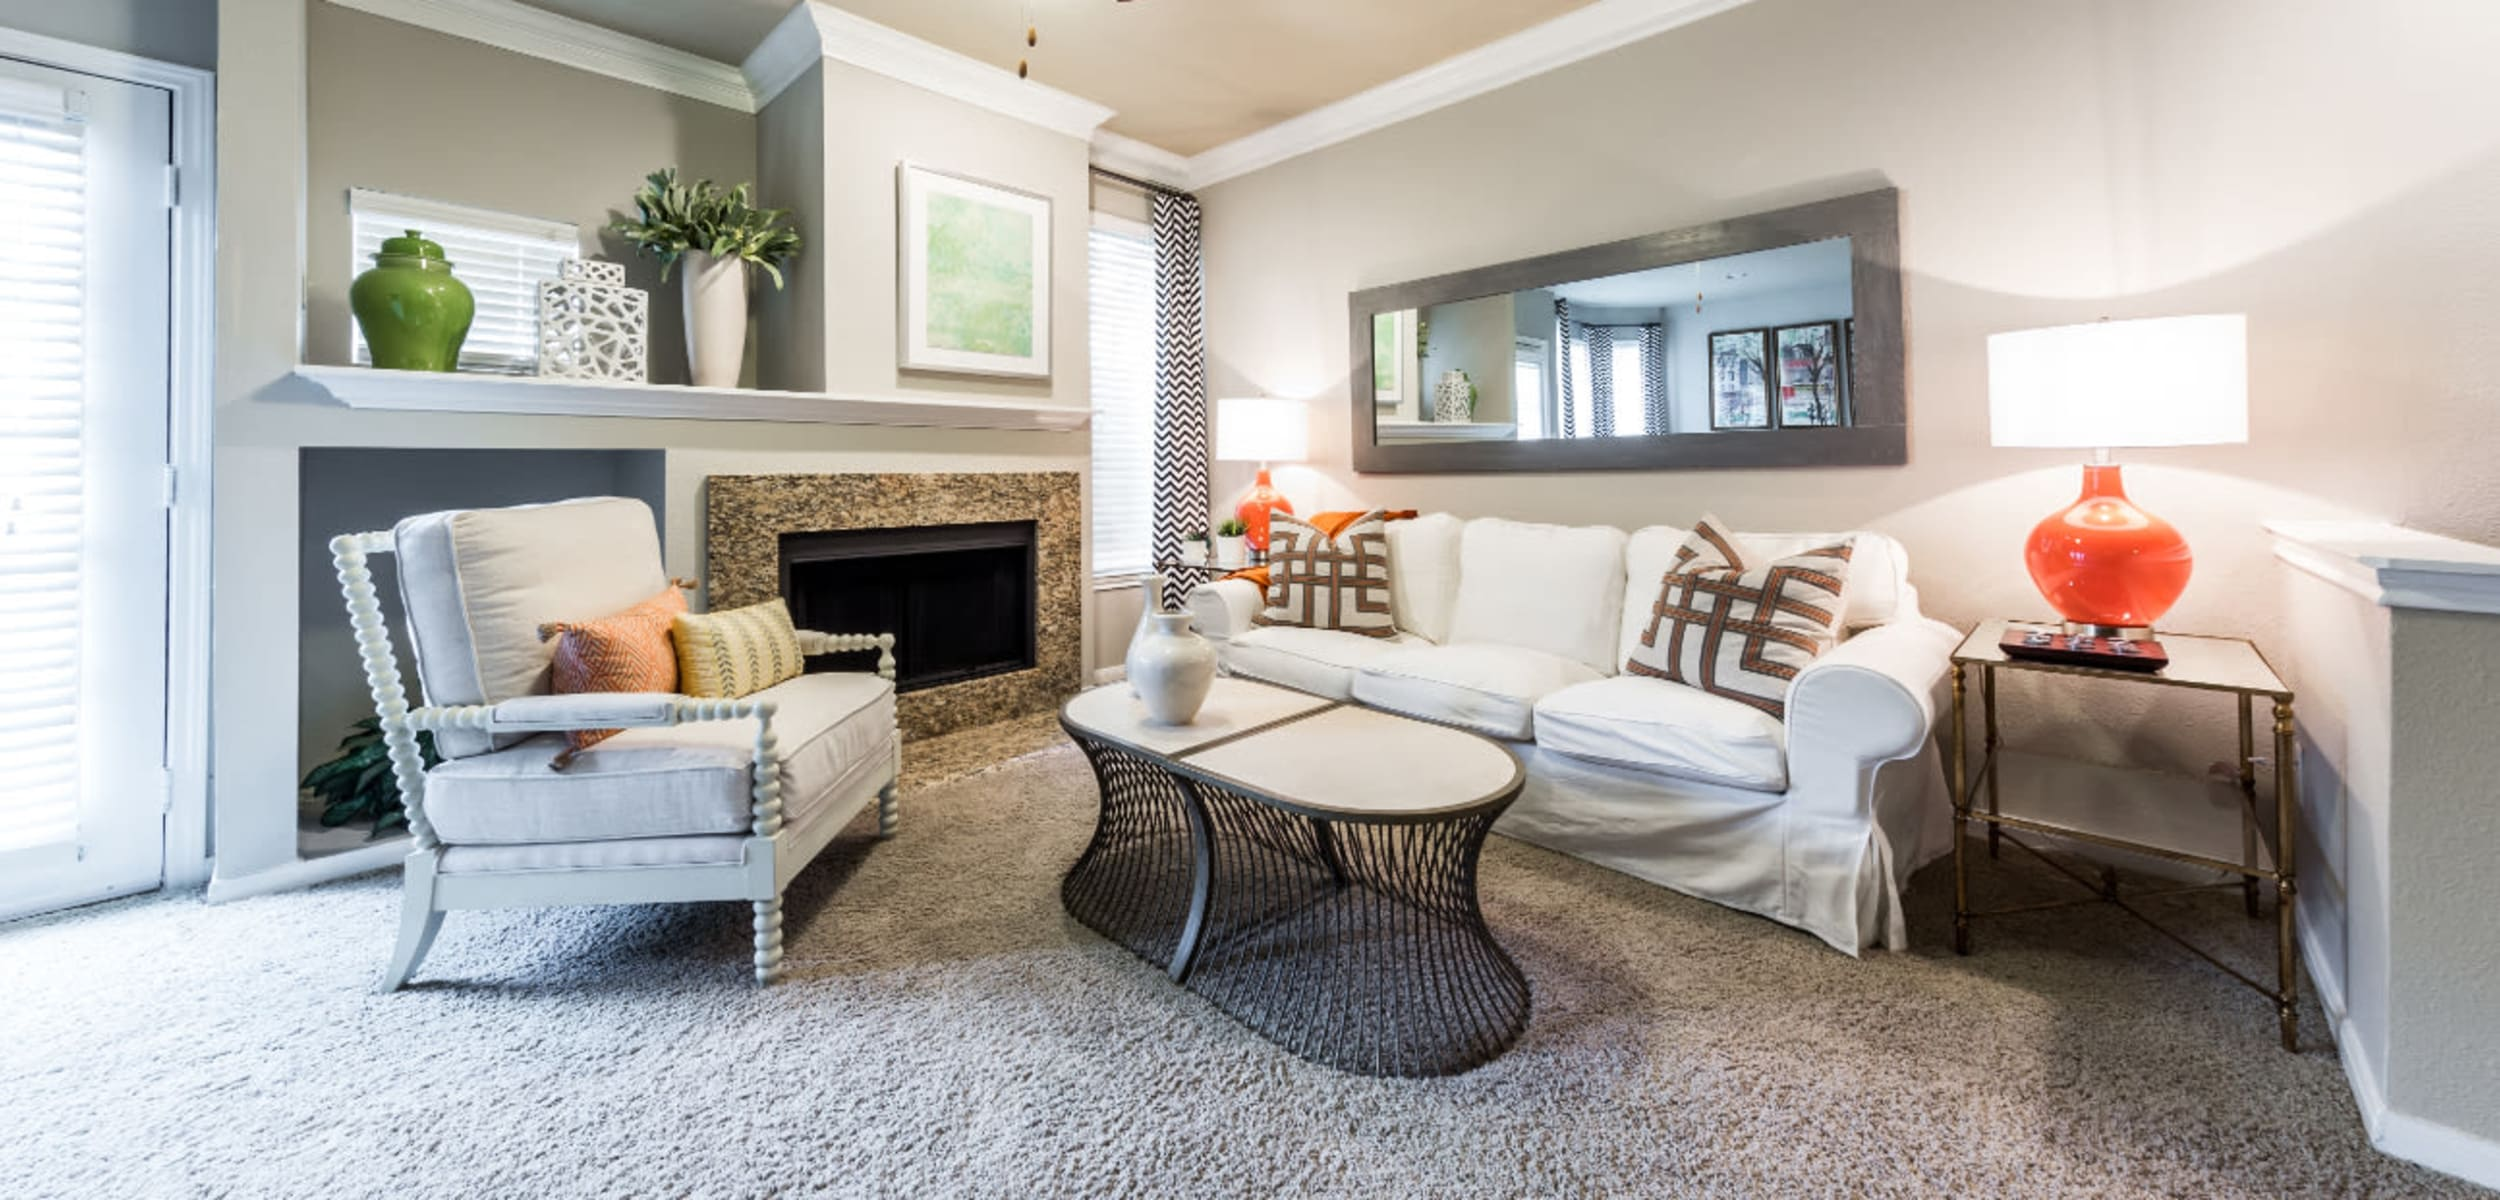 Modern carpeted living room with fireplace at Marquis at Stonegate in Fort Worth, Texas